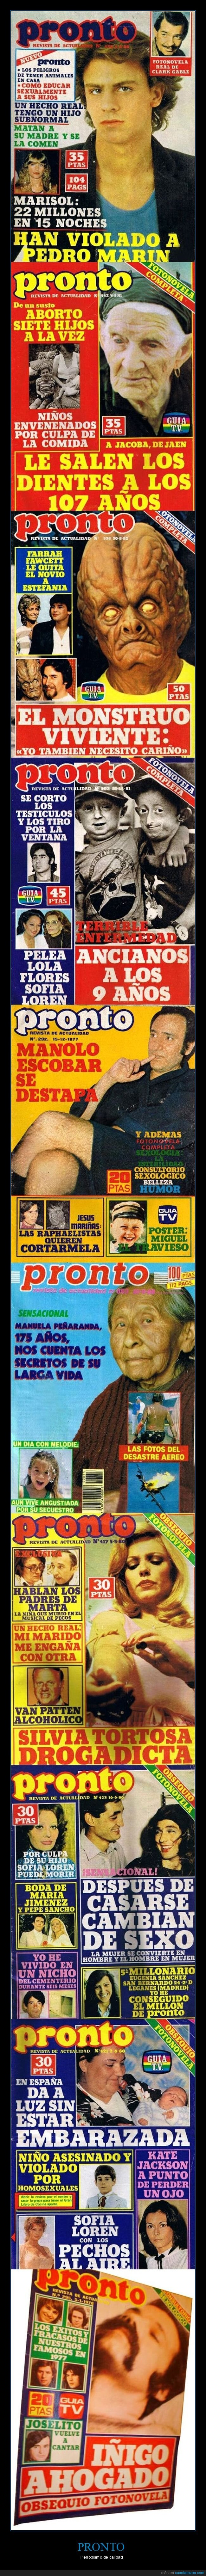 portadas,pronto,retro,revistas